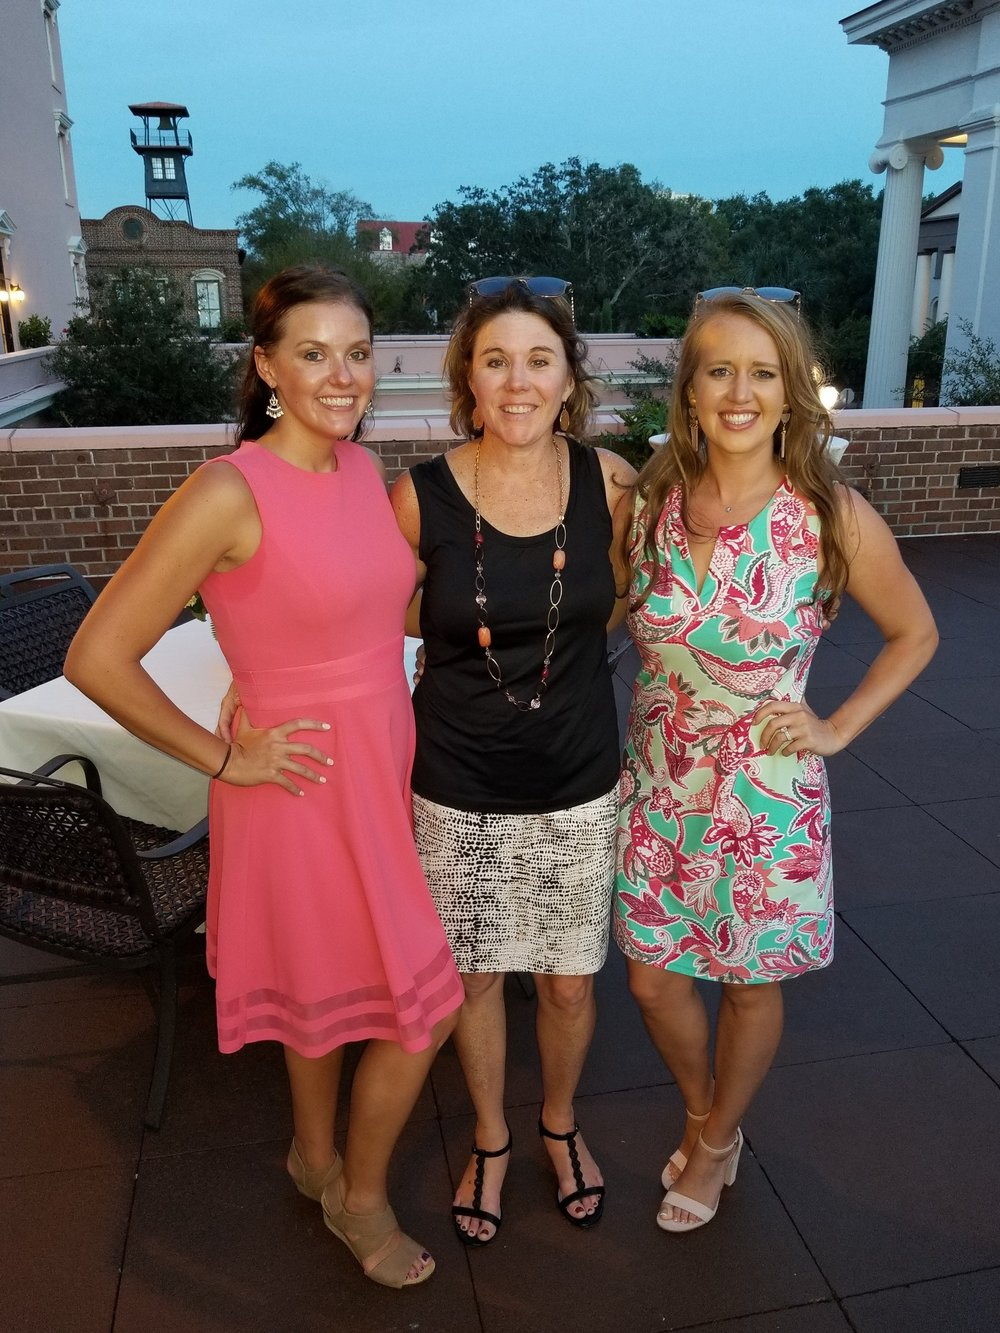 Our Marketing Team (From Left to Right): Stefanie, Liz and Allison